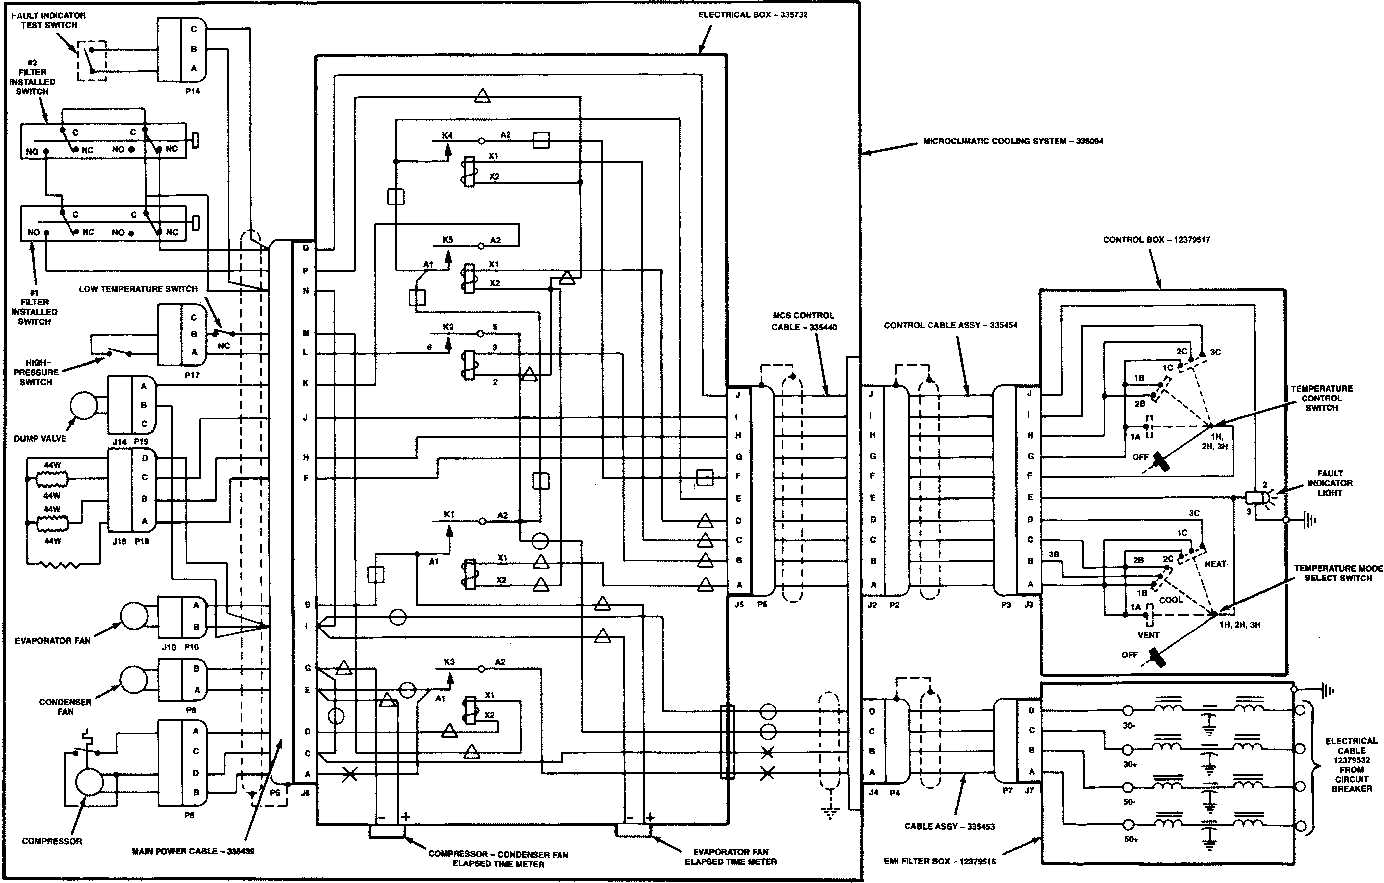 Electrical Engineering Schematics, Electrical, Free Engine